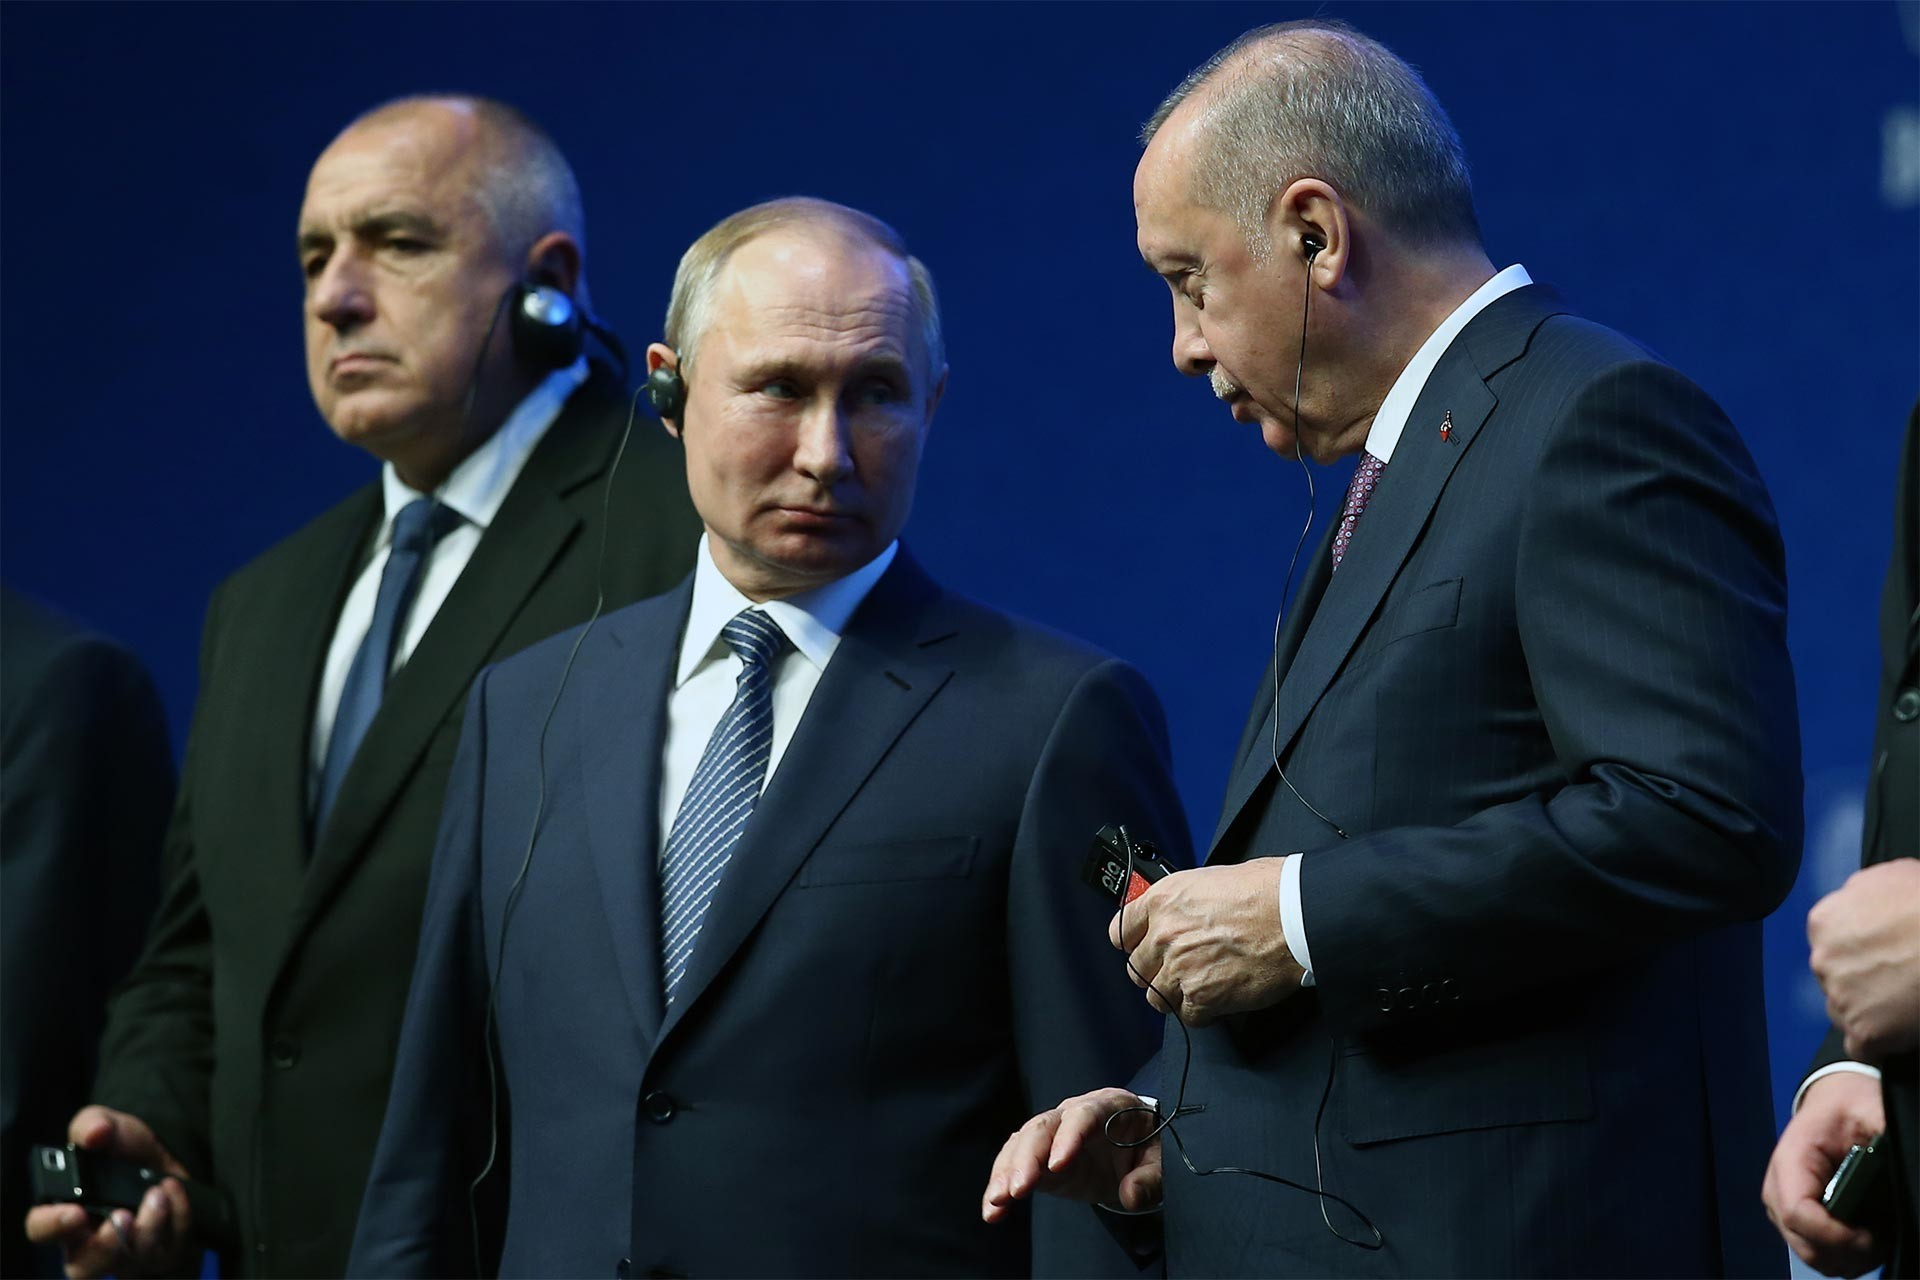 Russian President Vladimir Putin (left) and Turkish President Tayyip Erdoğan (right) standing.